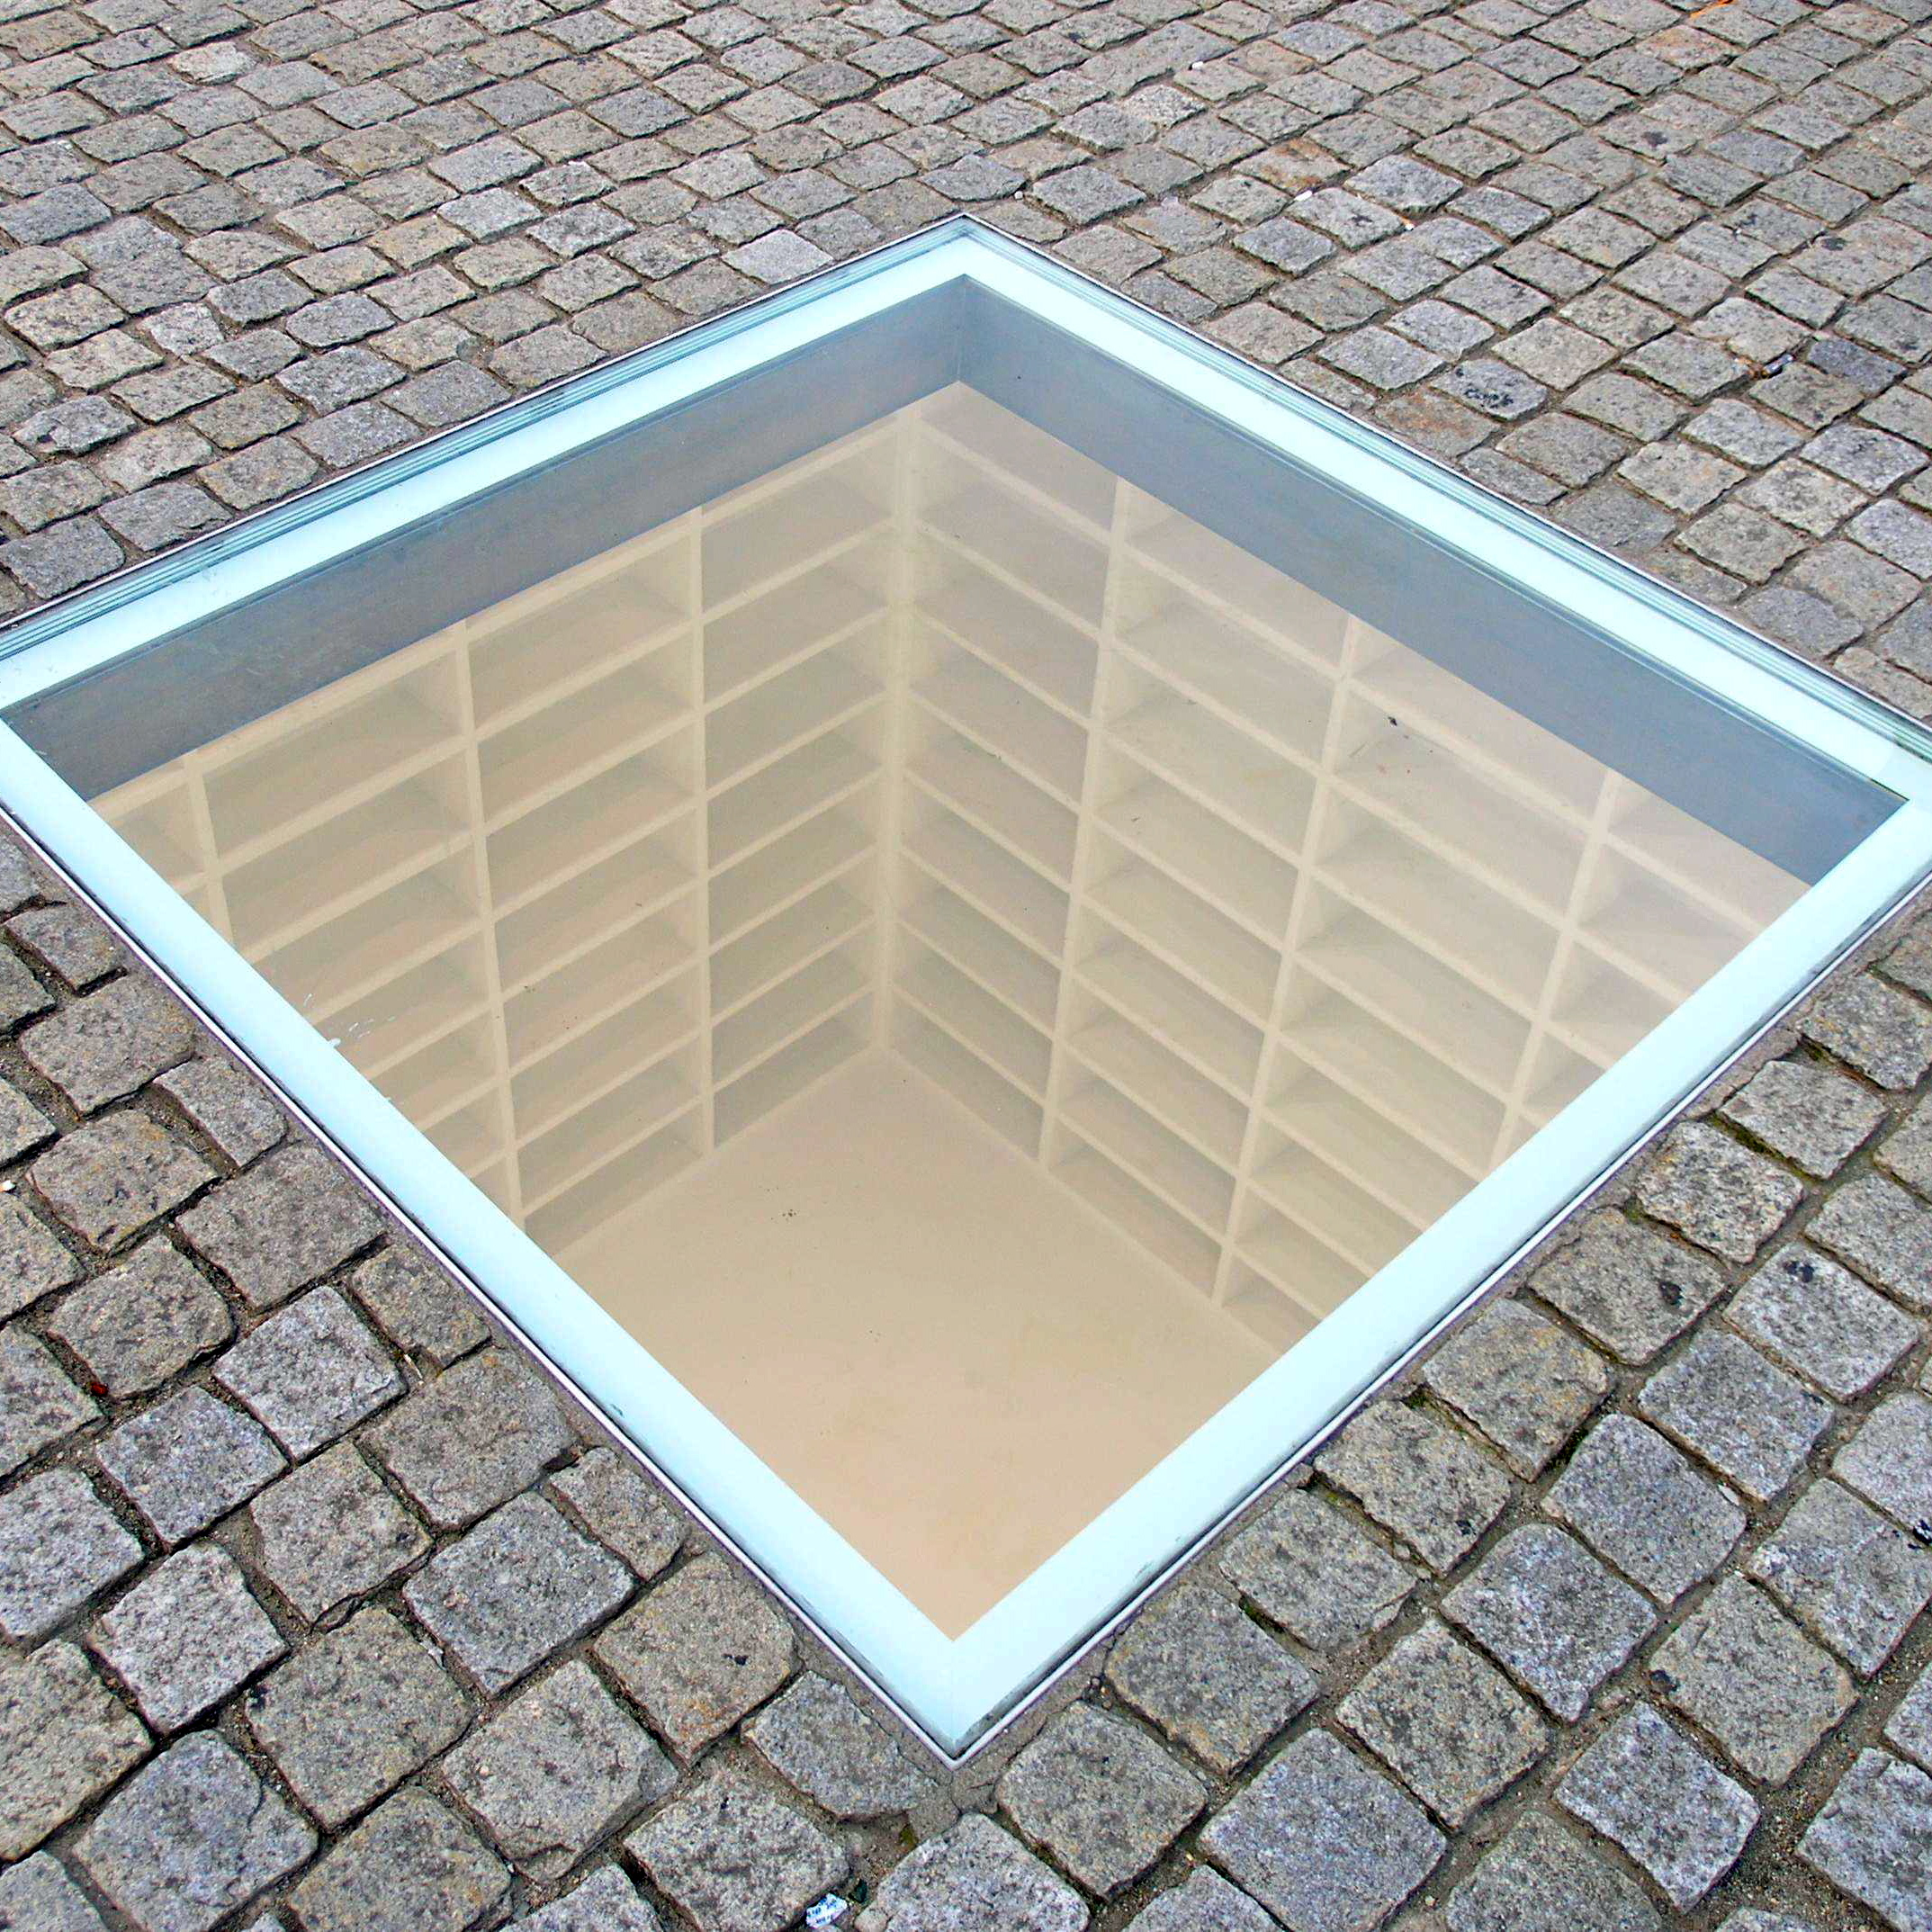 Image result for bebelplatz berlin memorial